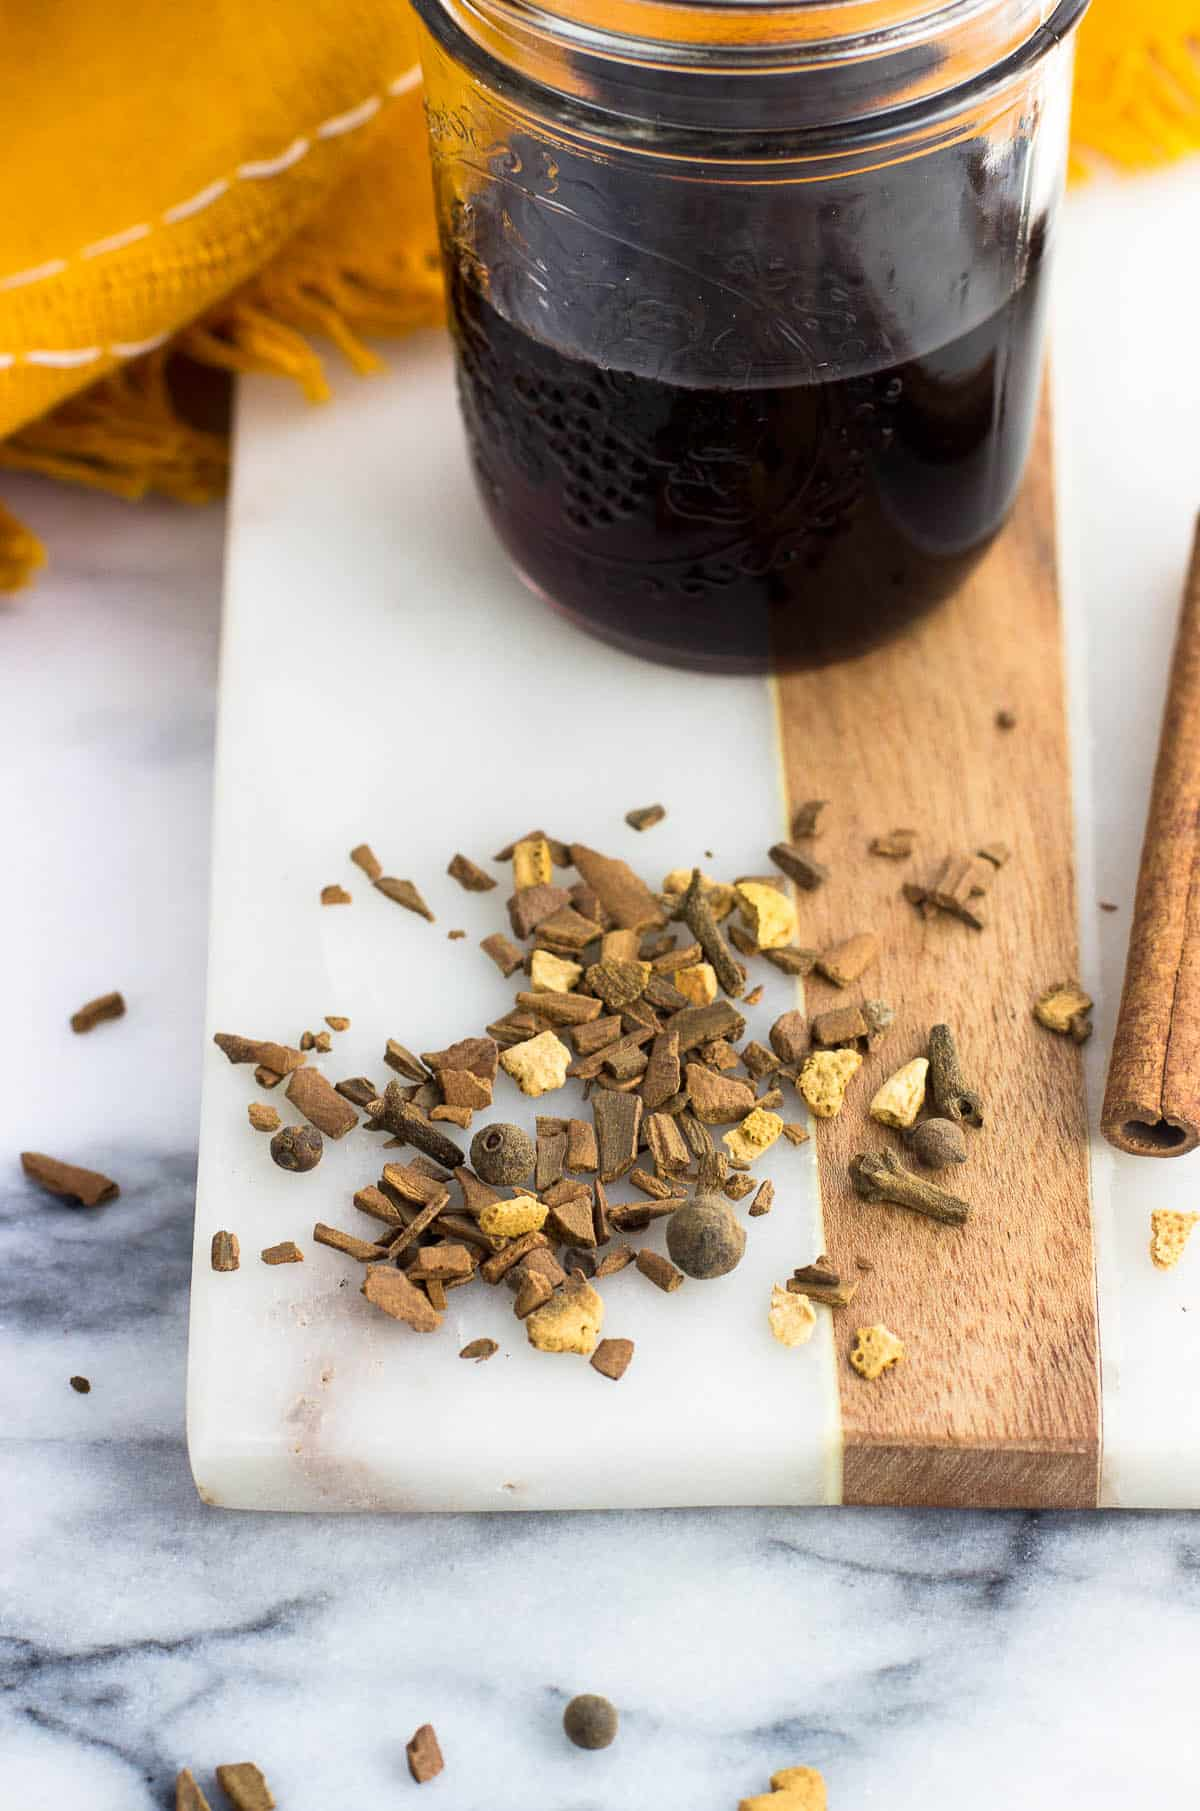 Dried mulling spices scattered on a marble board next to whole cinnamon sticks and a glass jar of wine